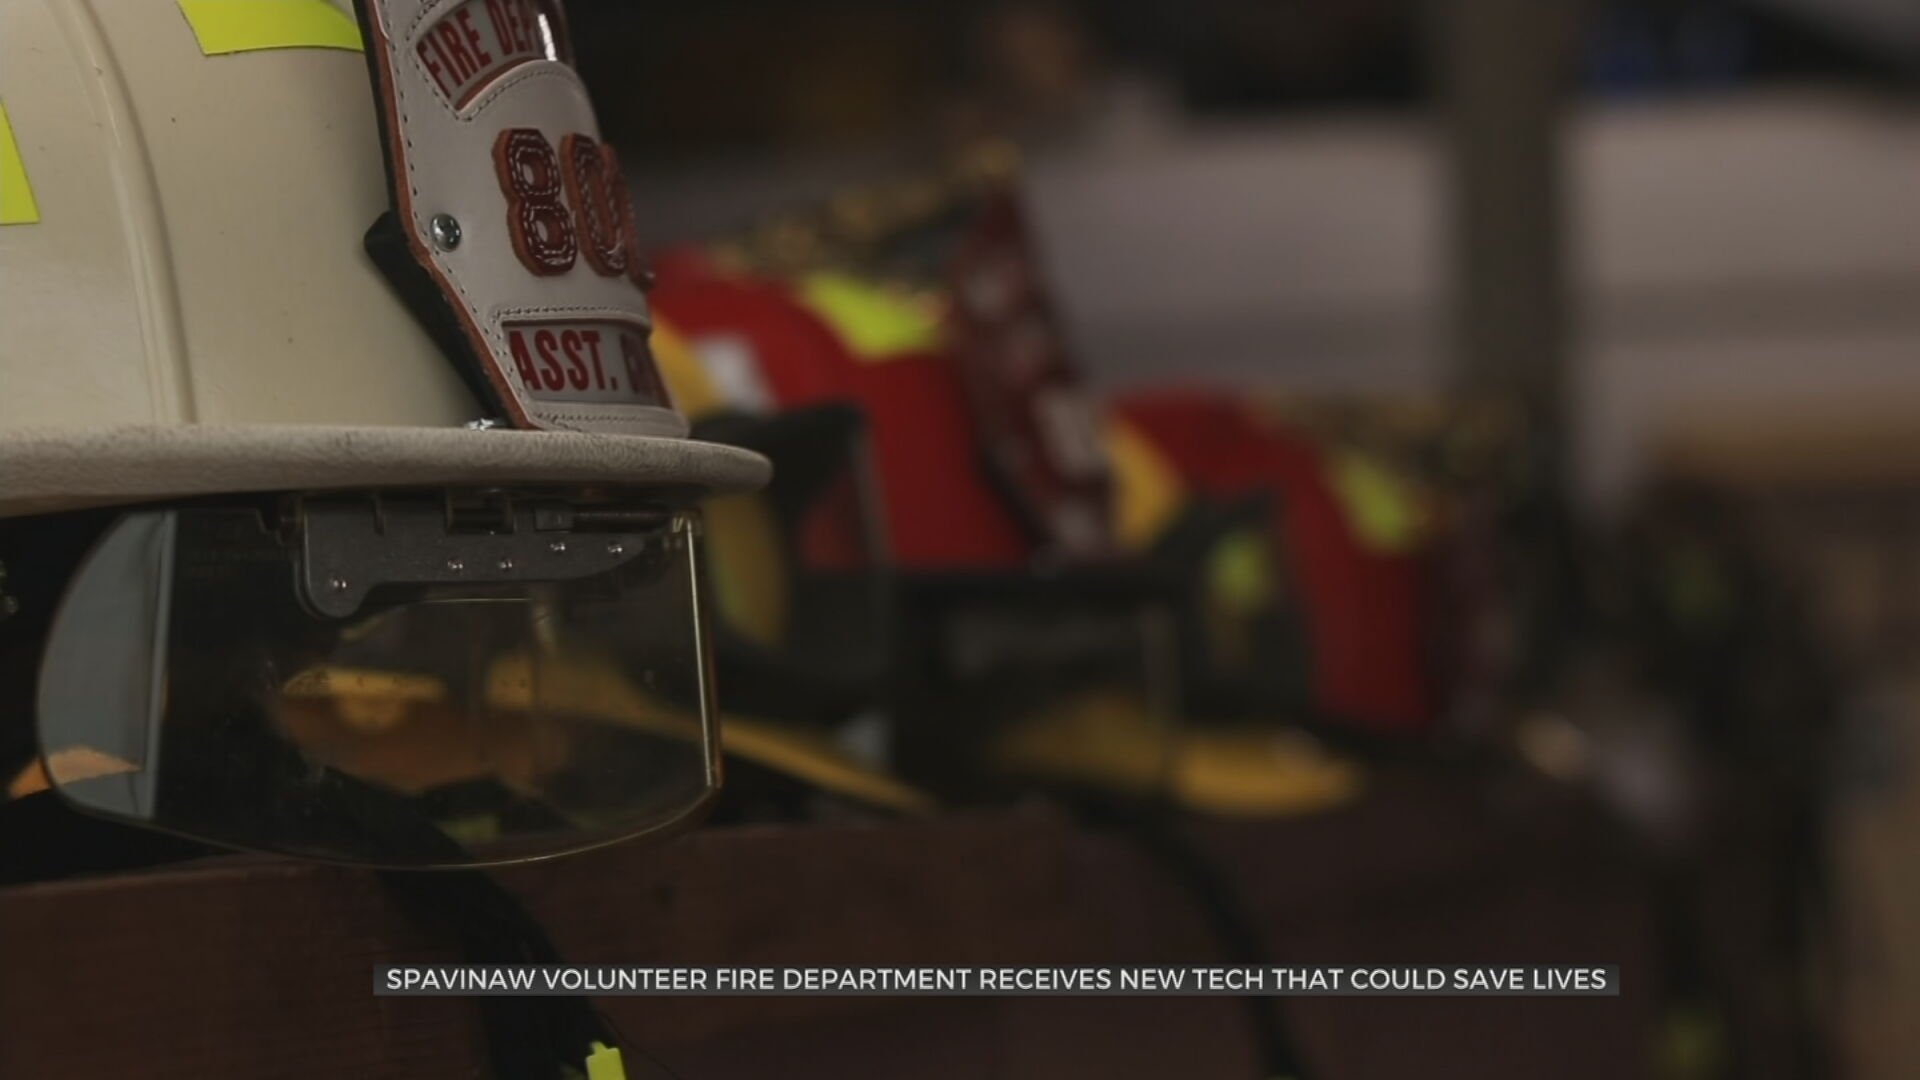 Spavinaw Fire Department Says New High-Tech Equipment Could Save Lives